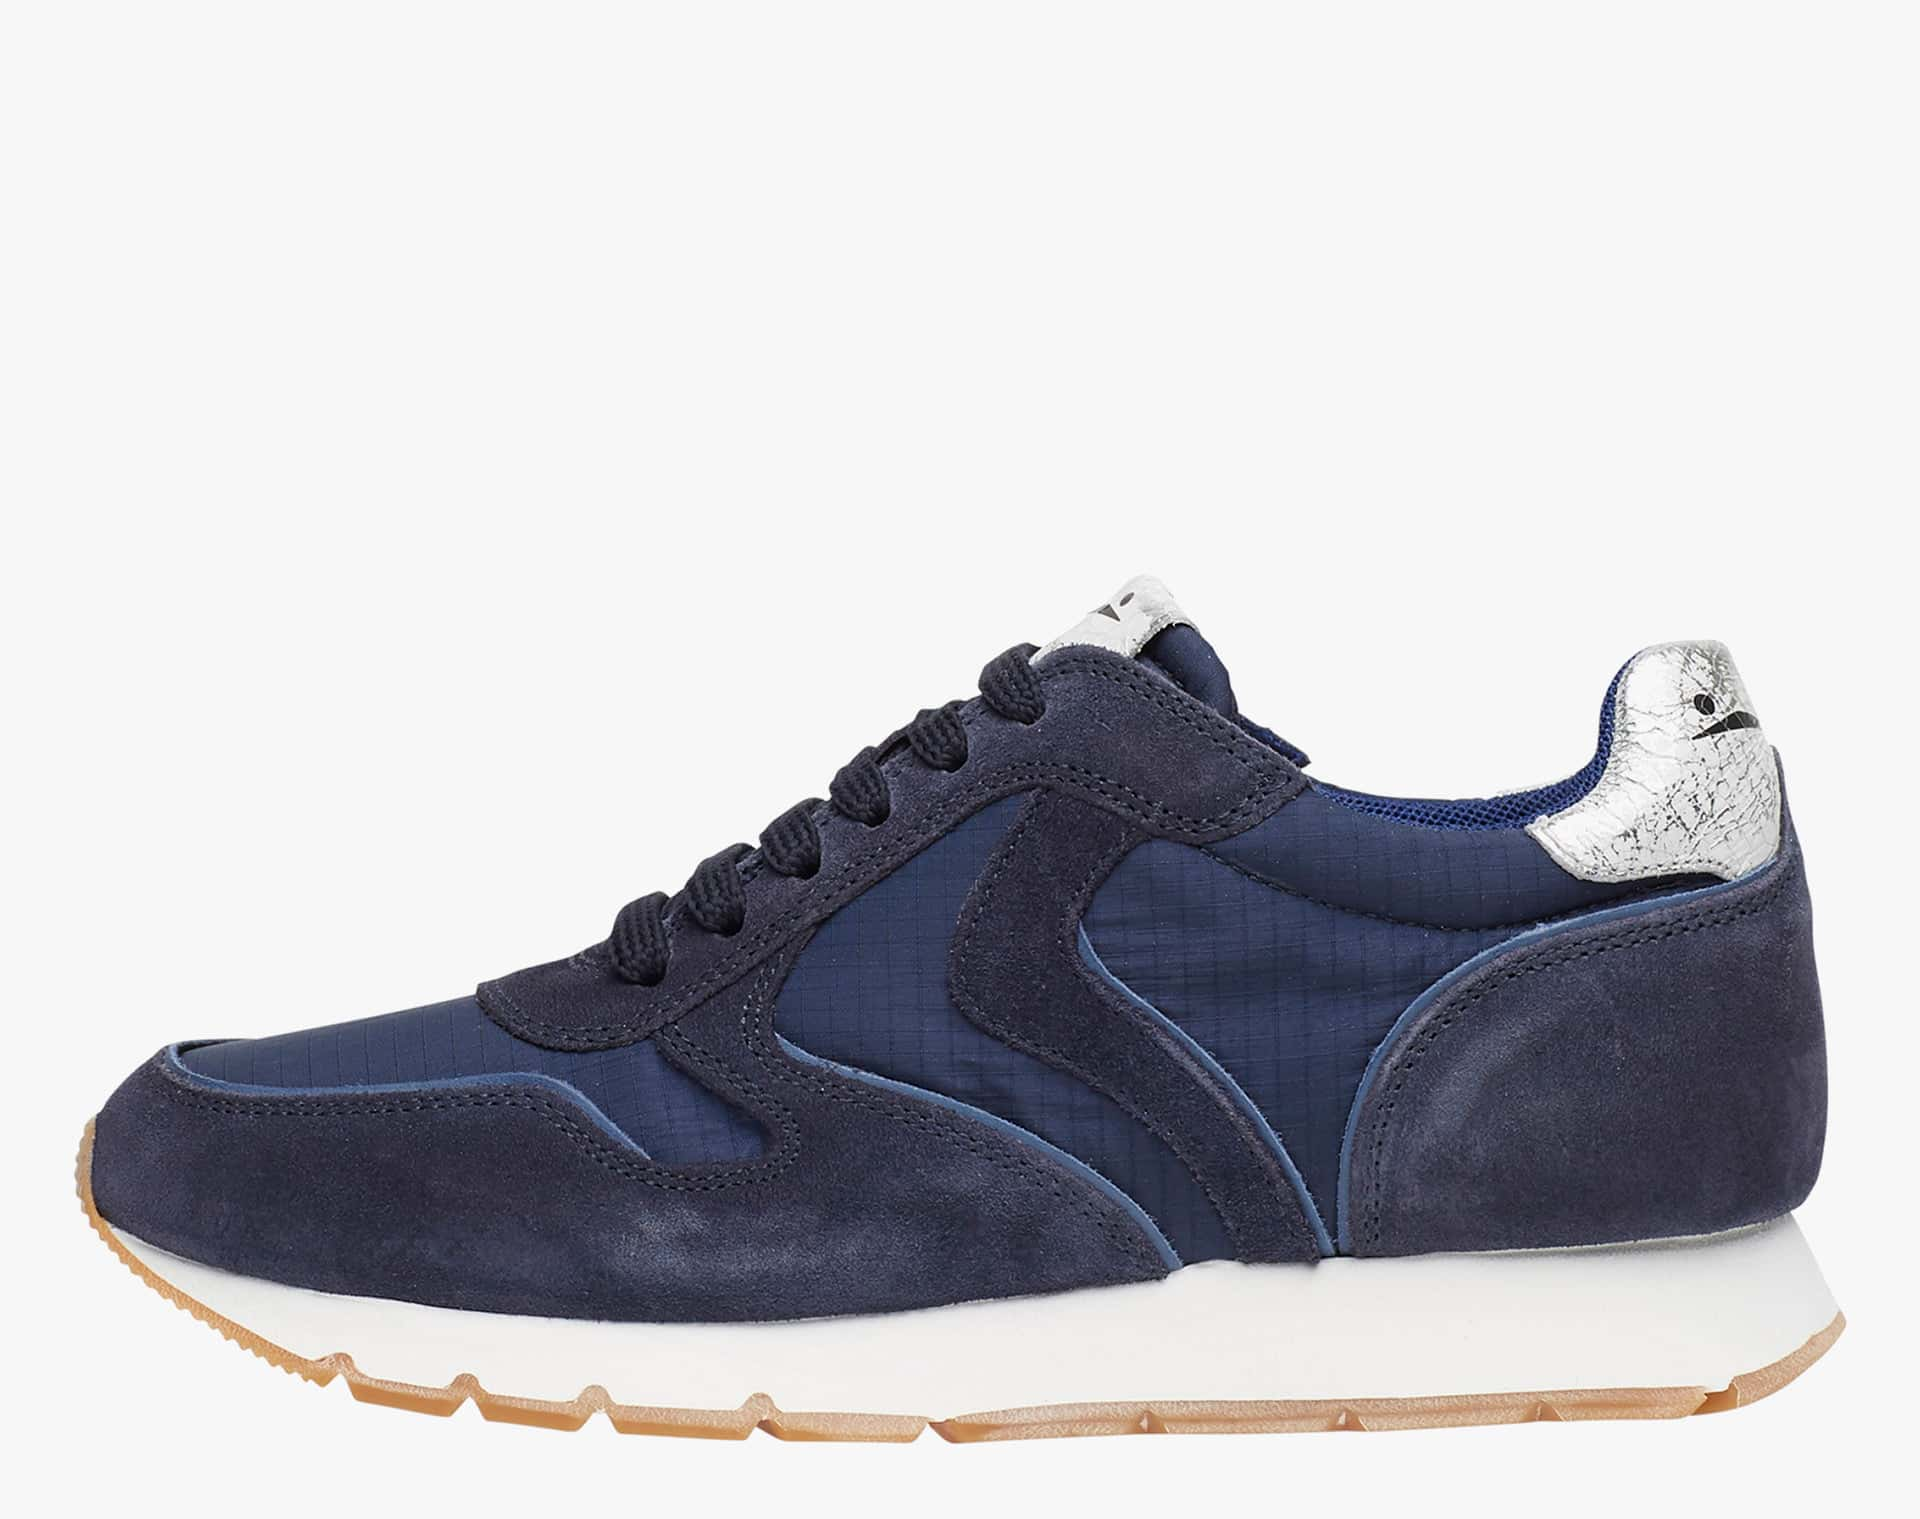 JULIA - Faded suede and technical fabric sneakers - Blue